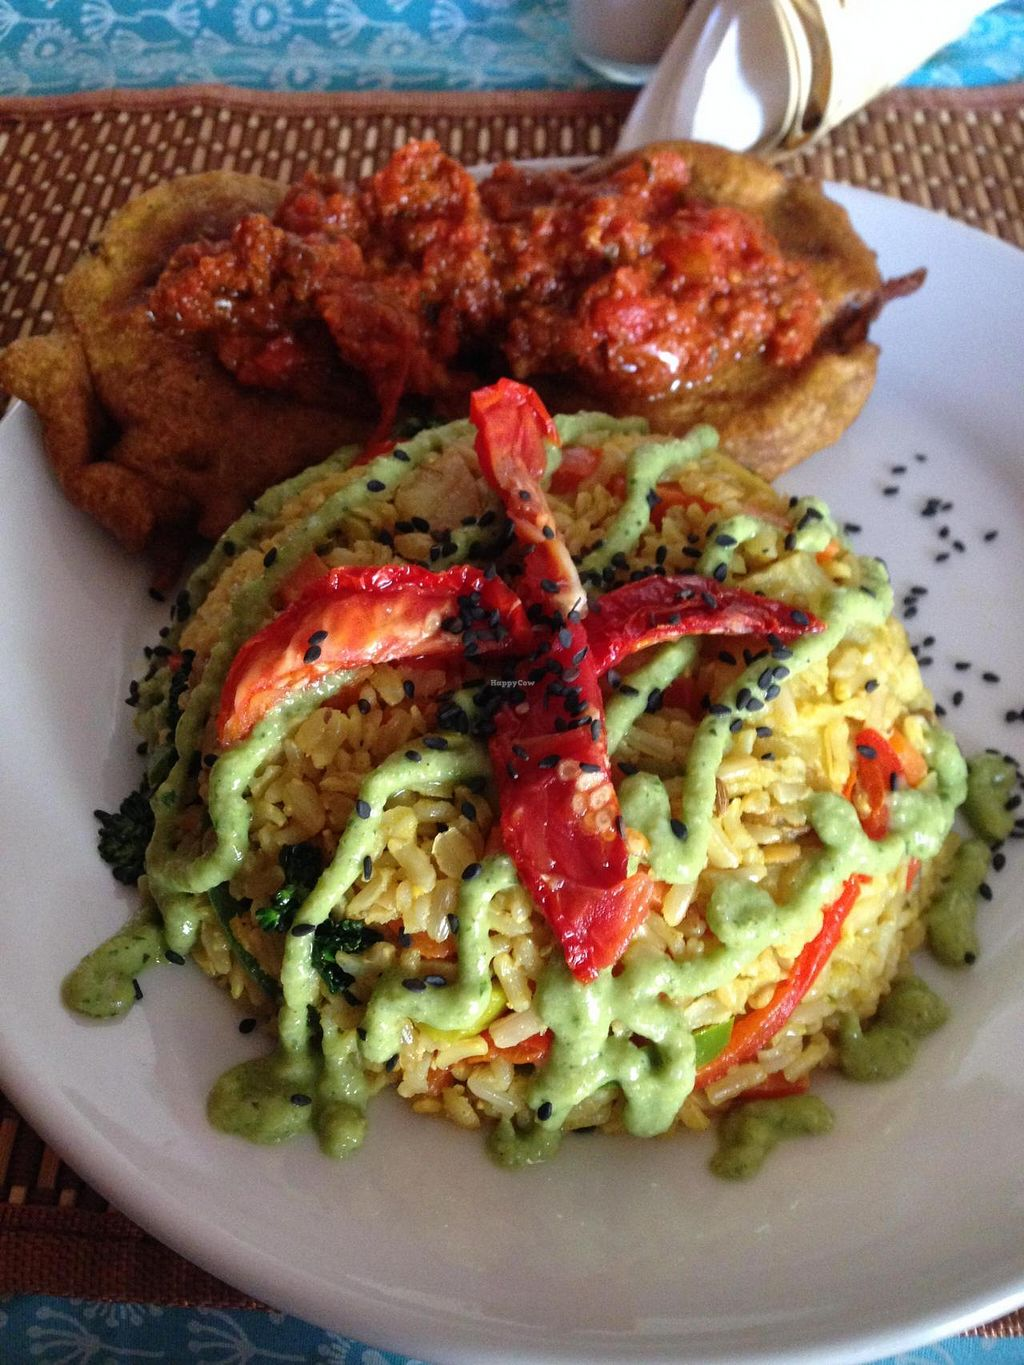 """Photo of Govindas' Natural - Vrinda  by <a href=""""/members/profile/Paolla"""">Paolla</a> <br/>Paella - Tuesday's main dish <br/> August 10, 2014  - <a href='/contact/abuse/image/50094/76588'>Report</a>"""